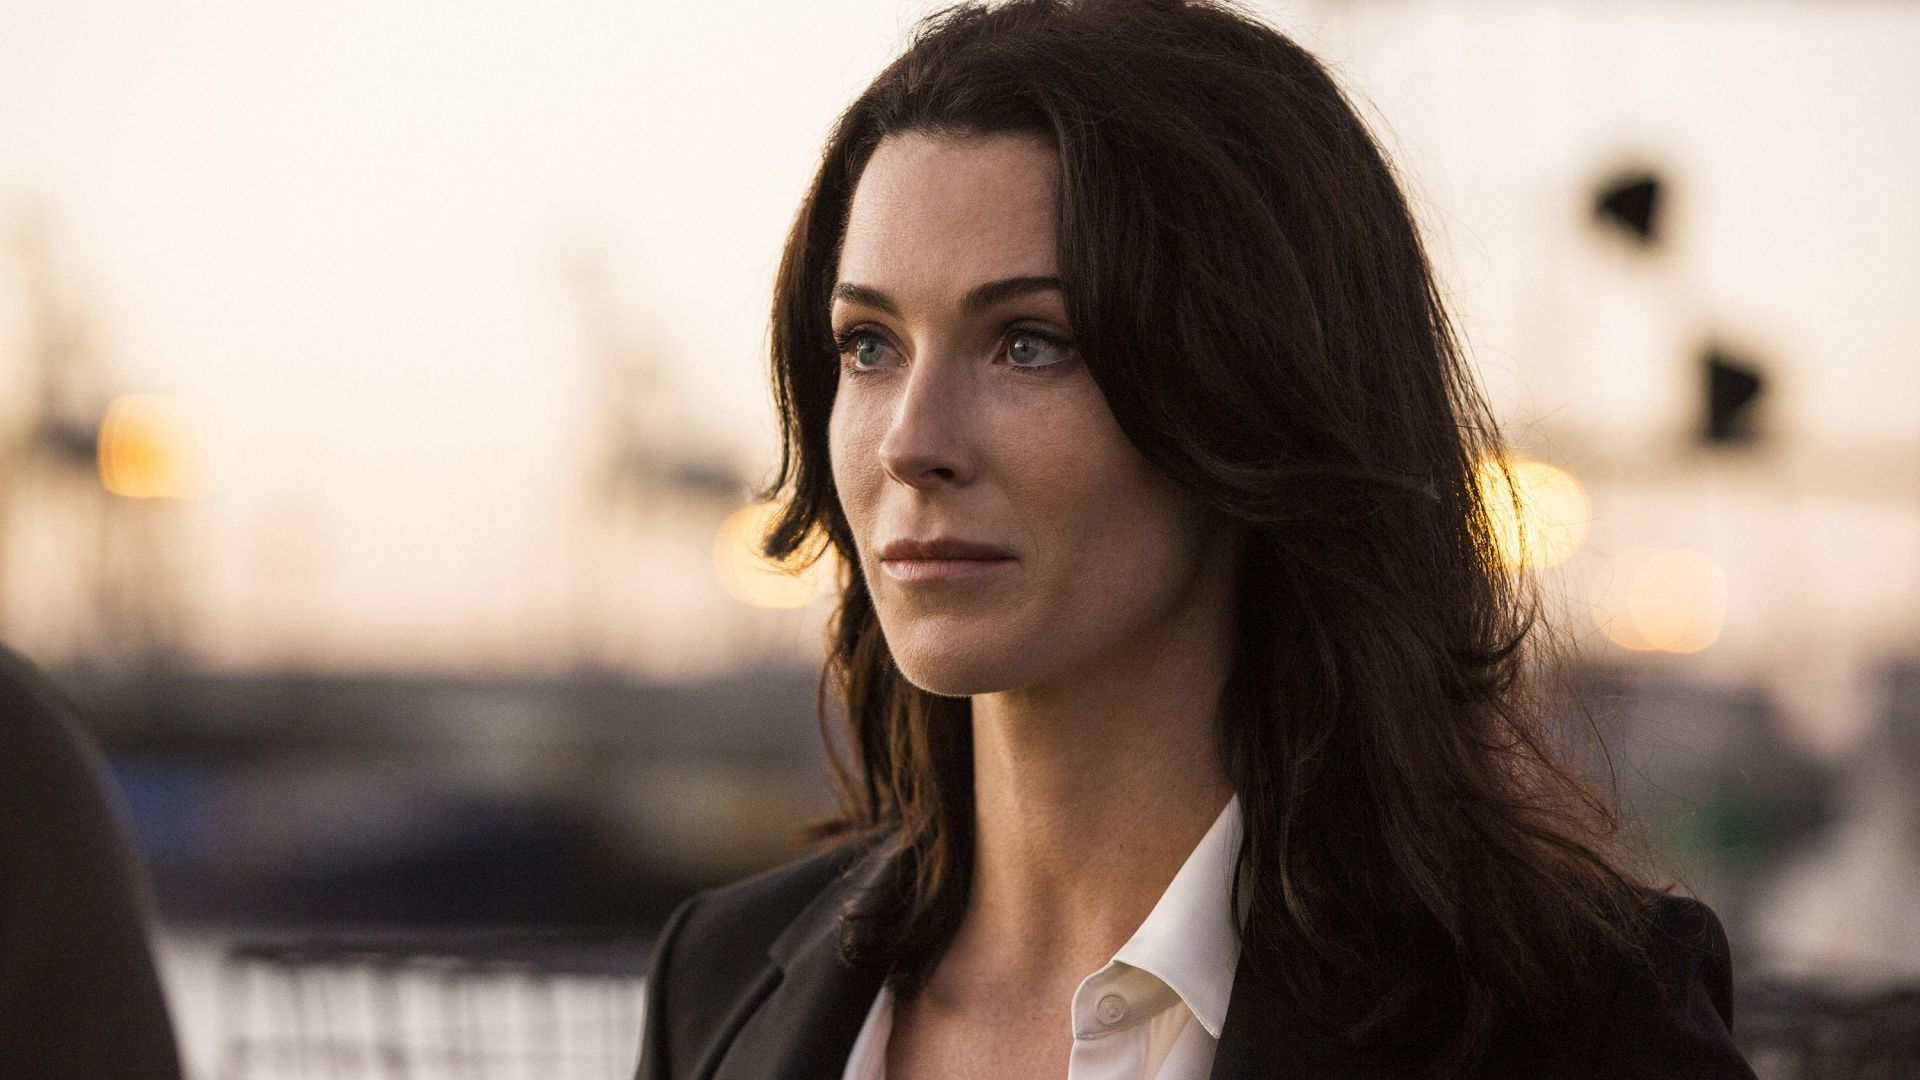 Bridget Regan, Most Popular Celebs in 2015, actress, producer, Kahlan Amnell, Legend of the Seeker, John Wick (horizontal)